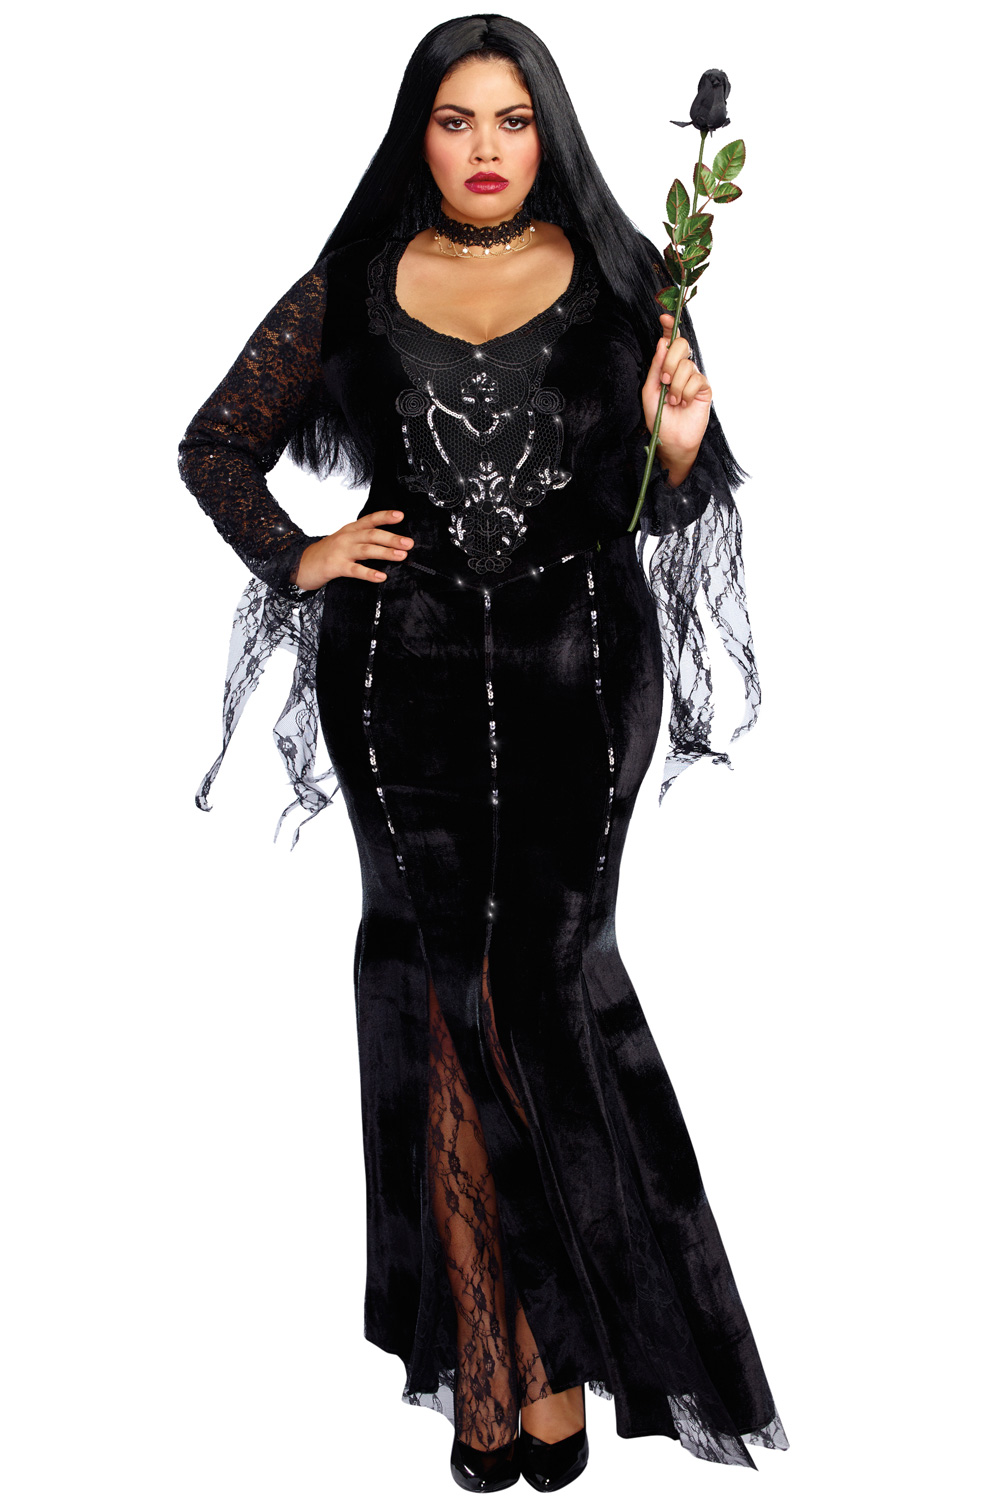 Plus size costumes purecostumes frightfully beautiful plus size costume solutioingenieria Image collections